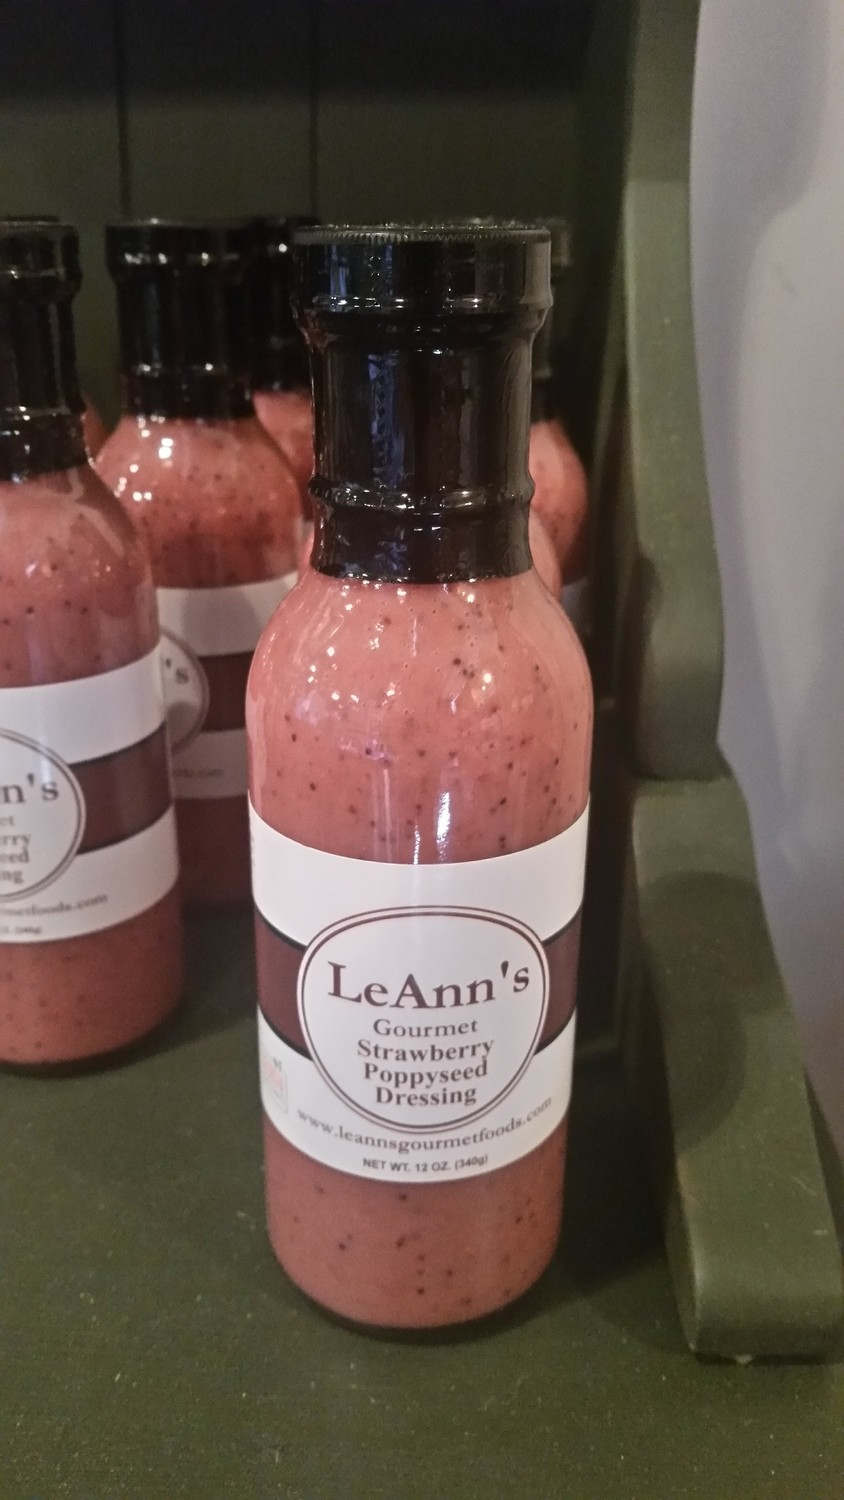 LeAnn's Gourmet Strawberry Poppyseed